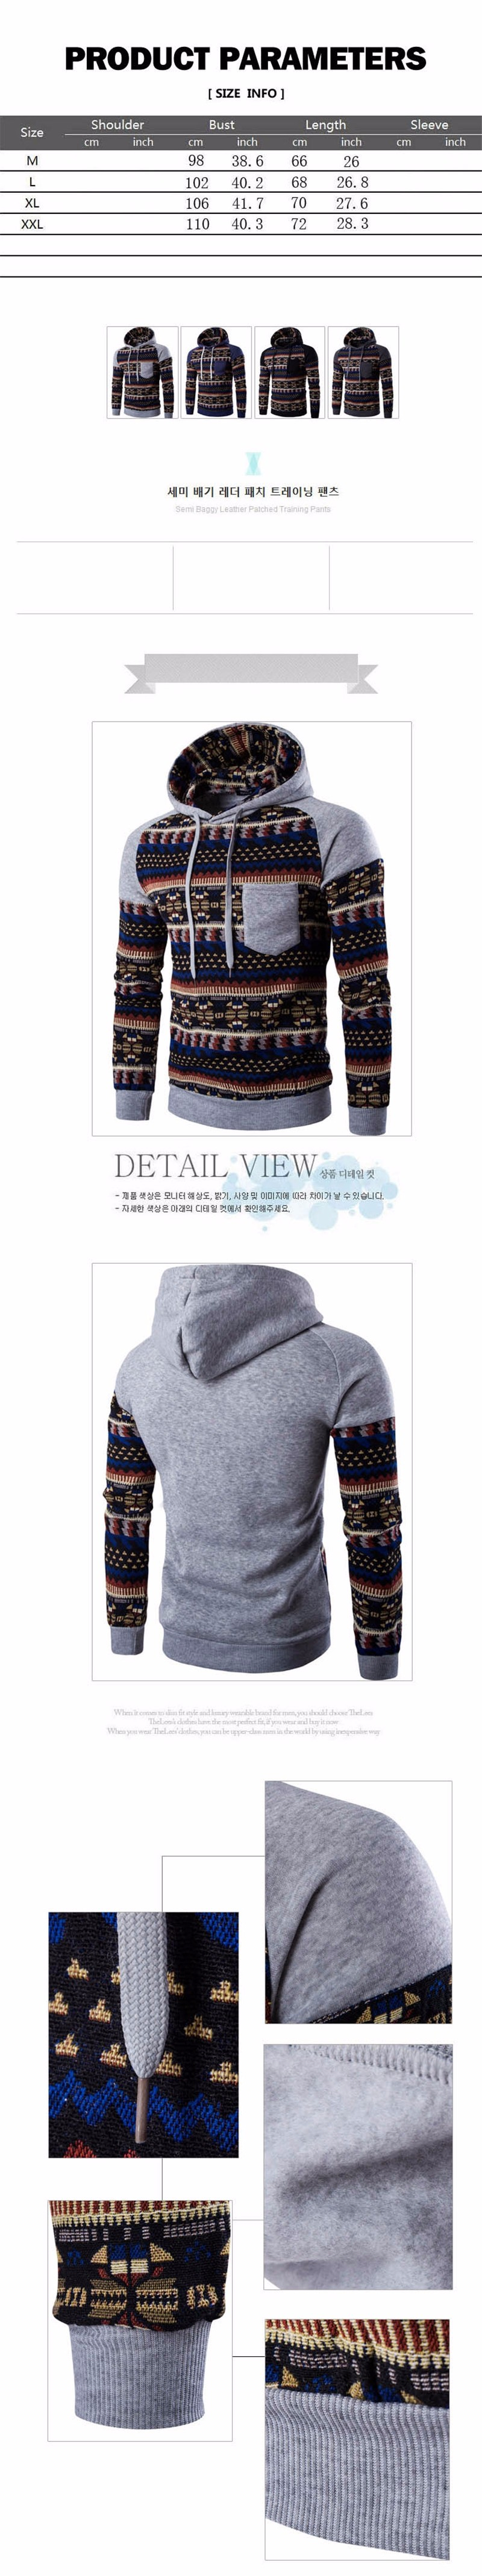 New-Arrival-Brand-Hoodie-Sweatshirt-Men-Spring-Fashion-Brand-Clothing-Printed-Hoodies-Men-Casual-Sli-32769466922